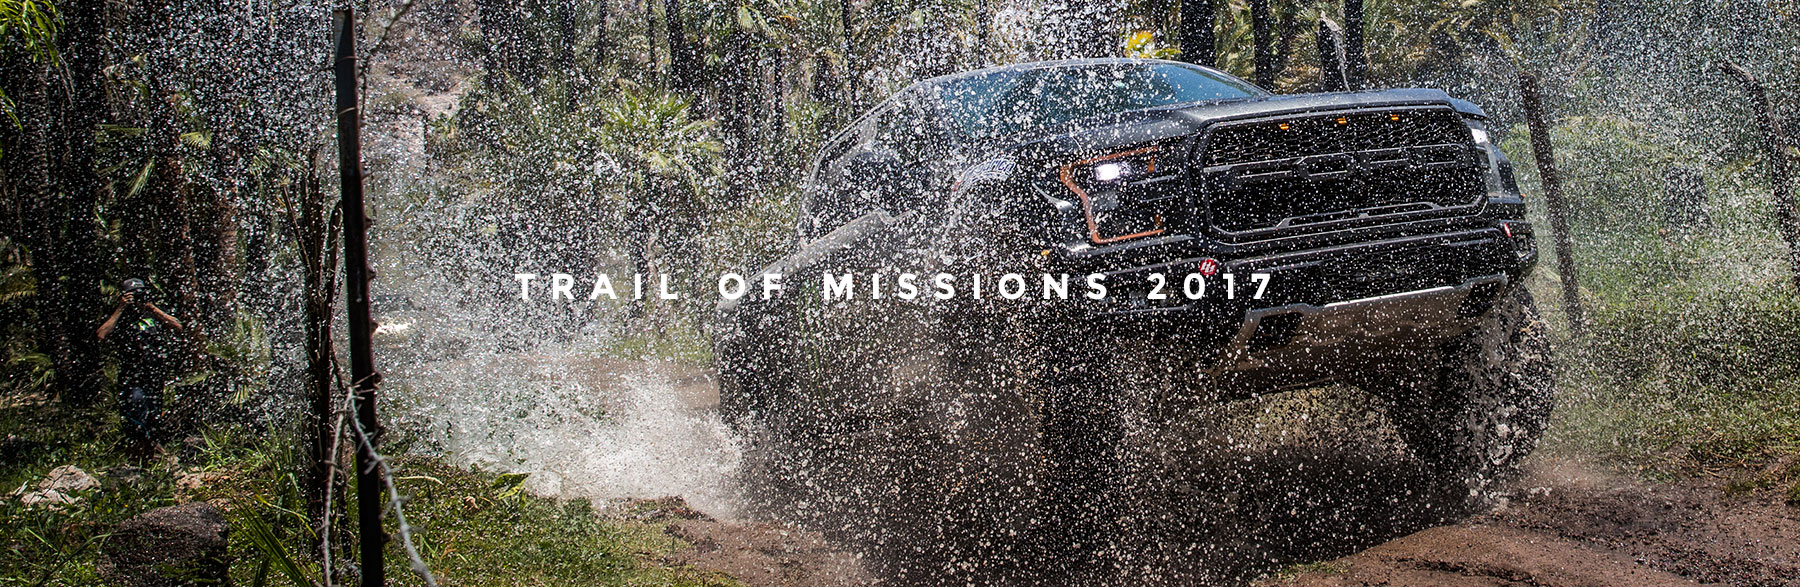 2017 Trail of Missions